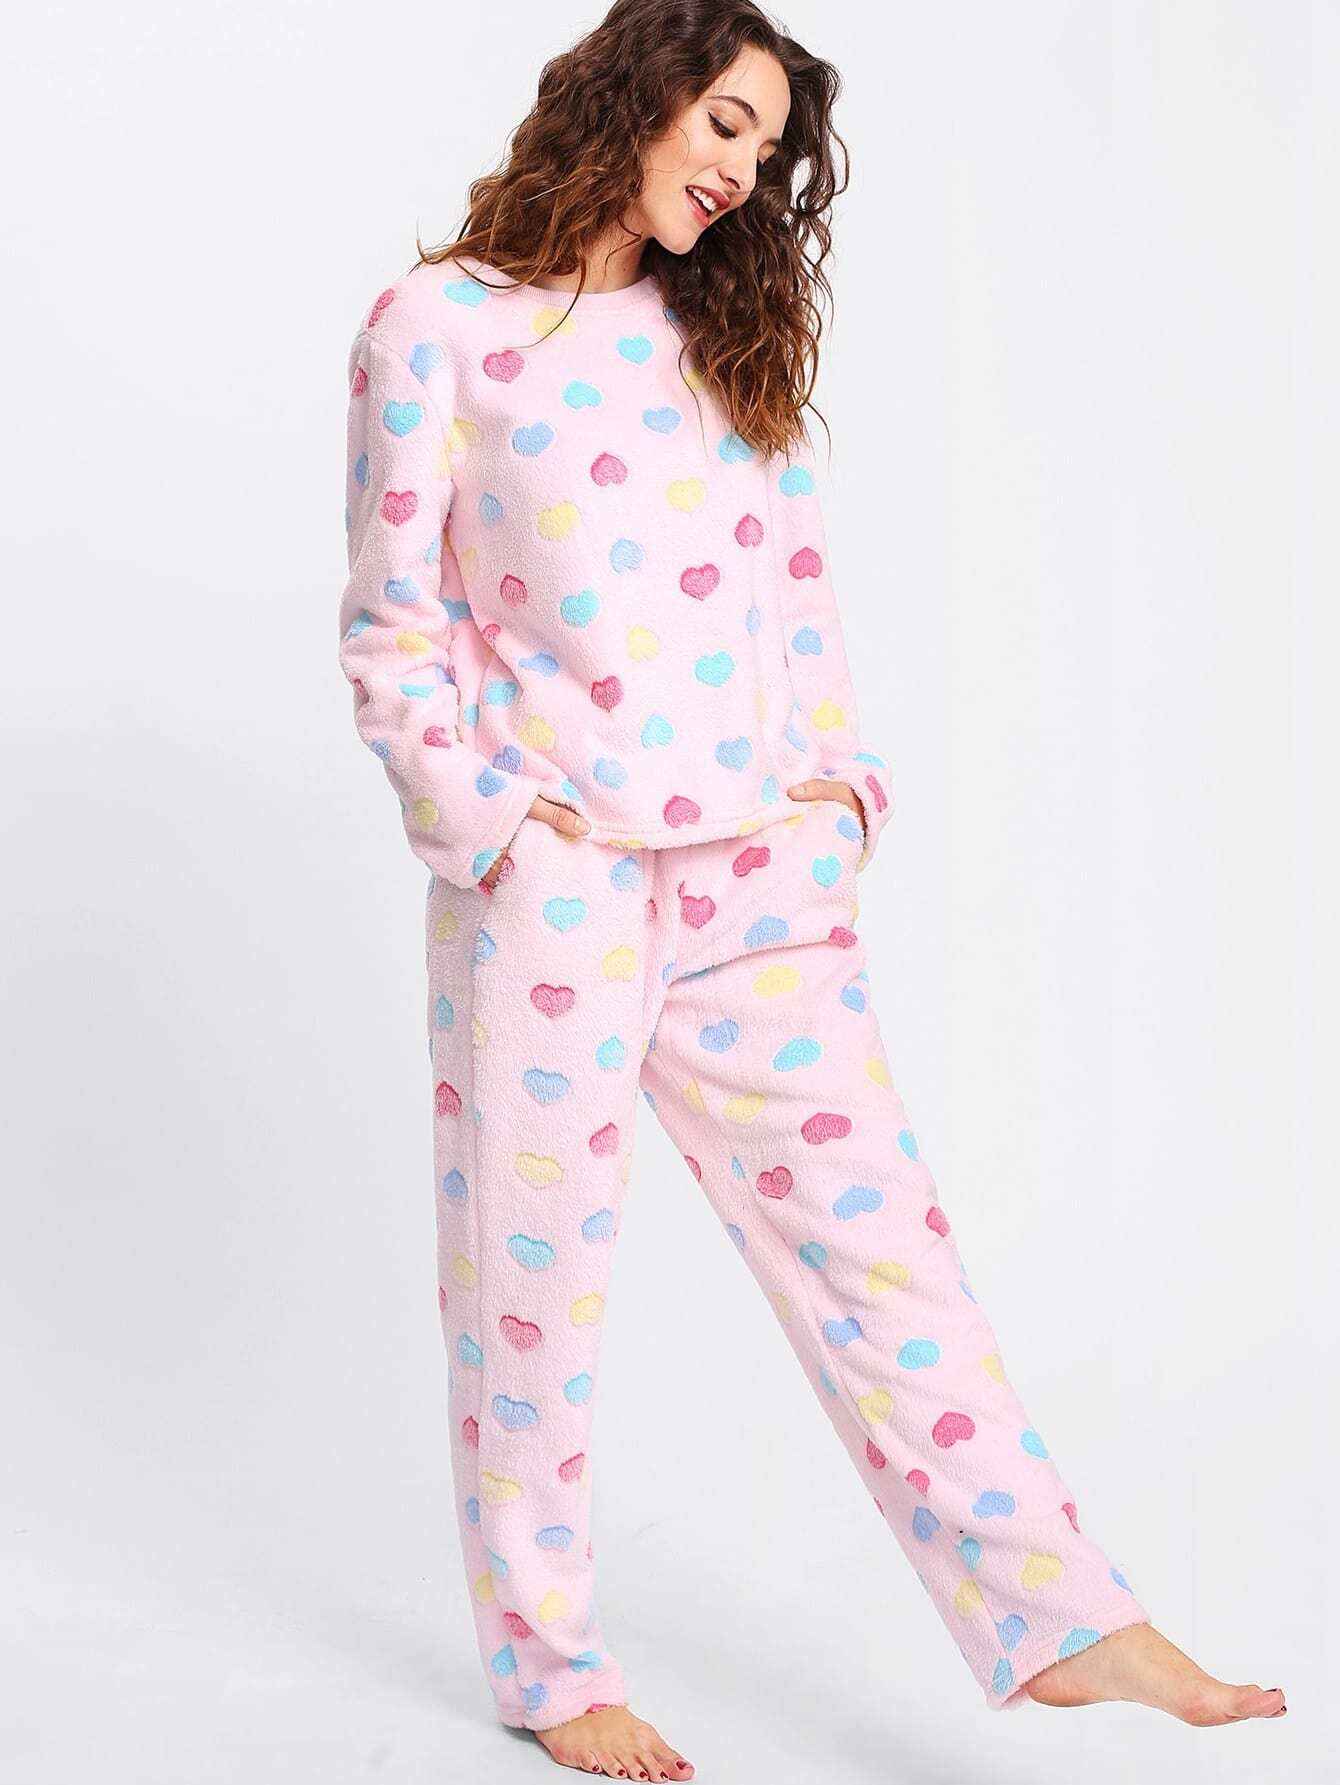 Heart Pattern Fleece Top & Pants Pj Set lisa corti короткое платье